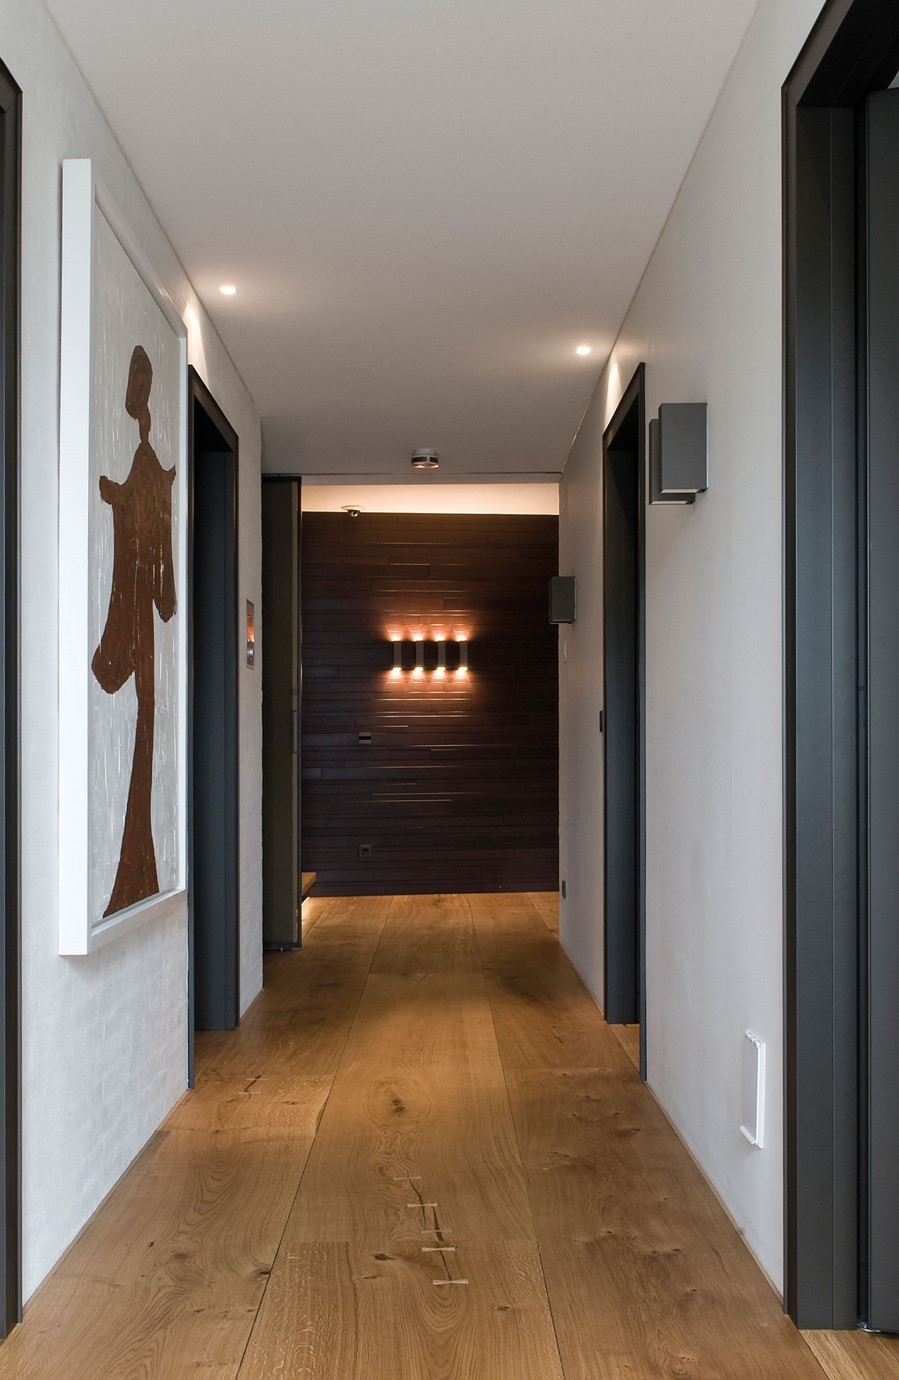 oak-hardwood-floors-heartoak_natural-oil_strib-residence_hallway_dinesen.jpg